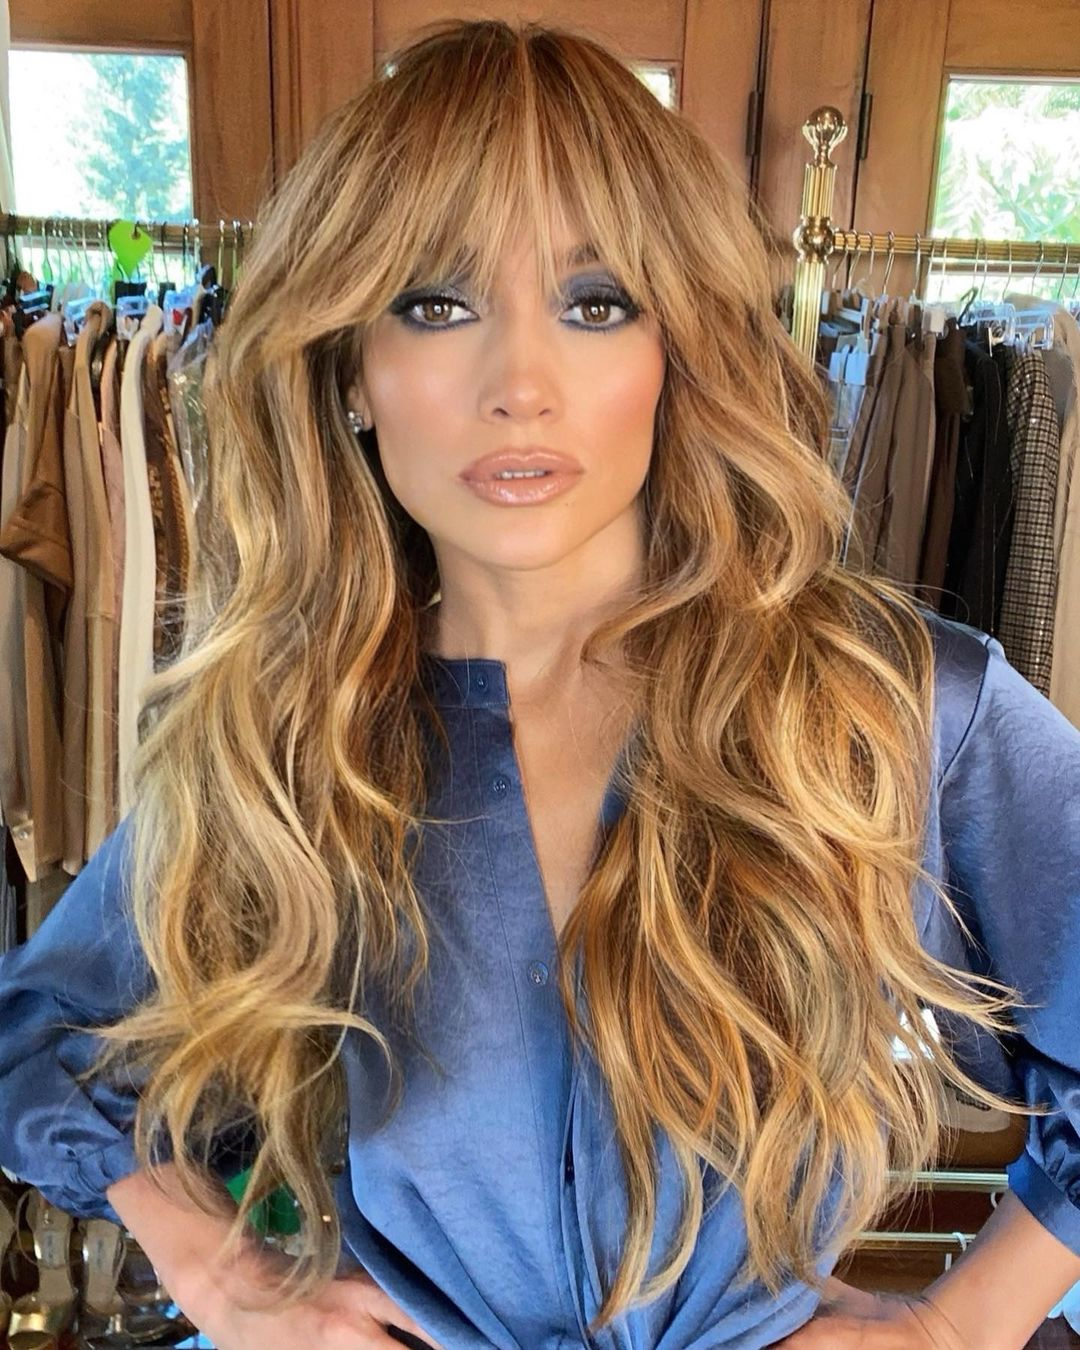 Bangs Are Back, According to Jennifer Lopez (and These 5 Other Celebs)